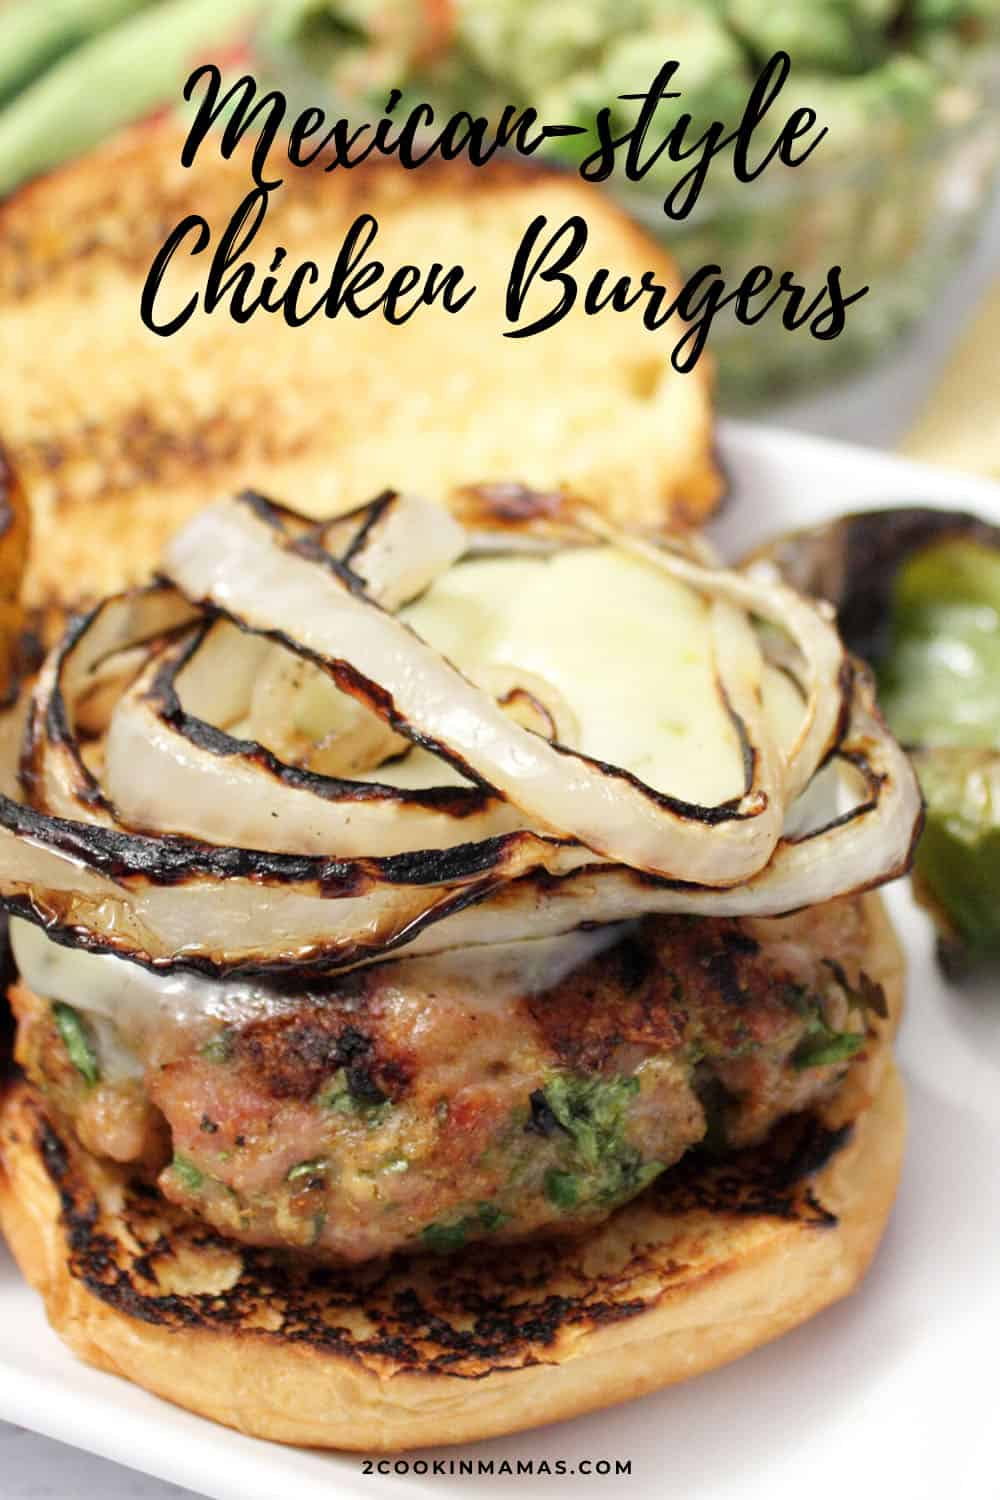 Chicken Burgers with A Mexican Twist